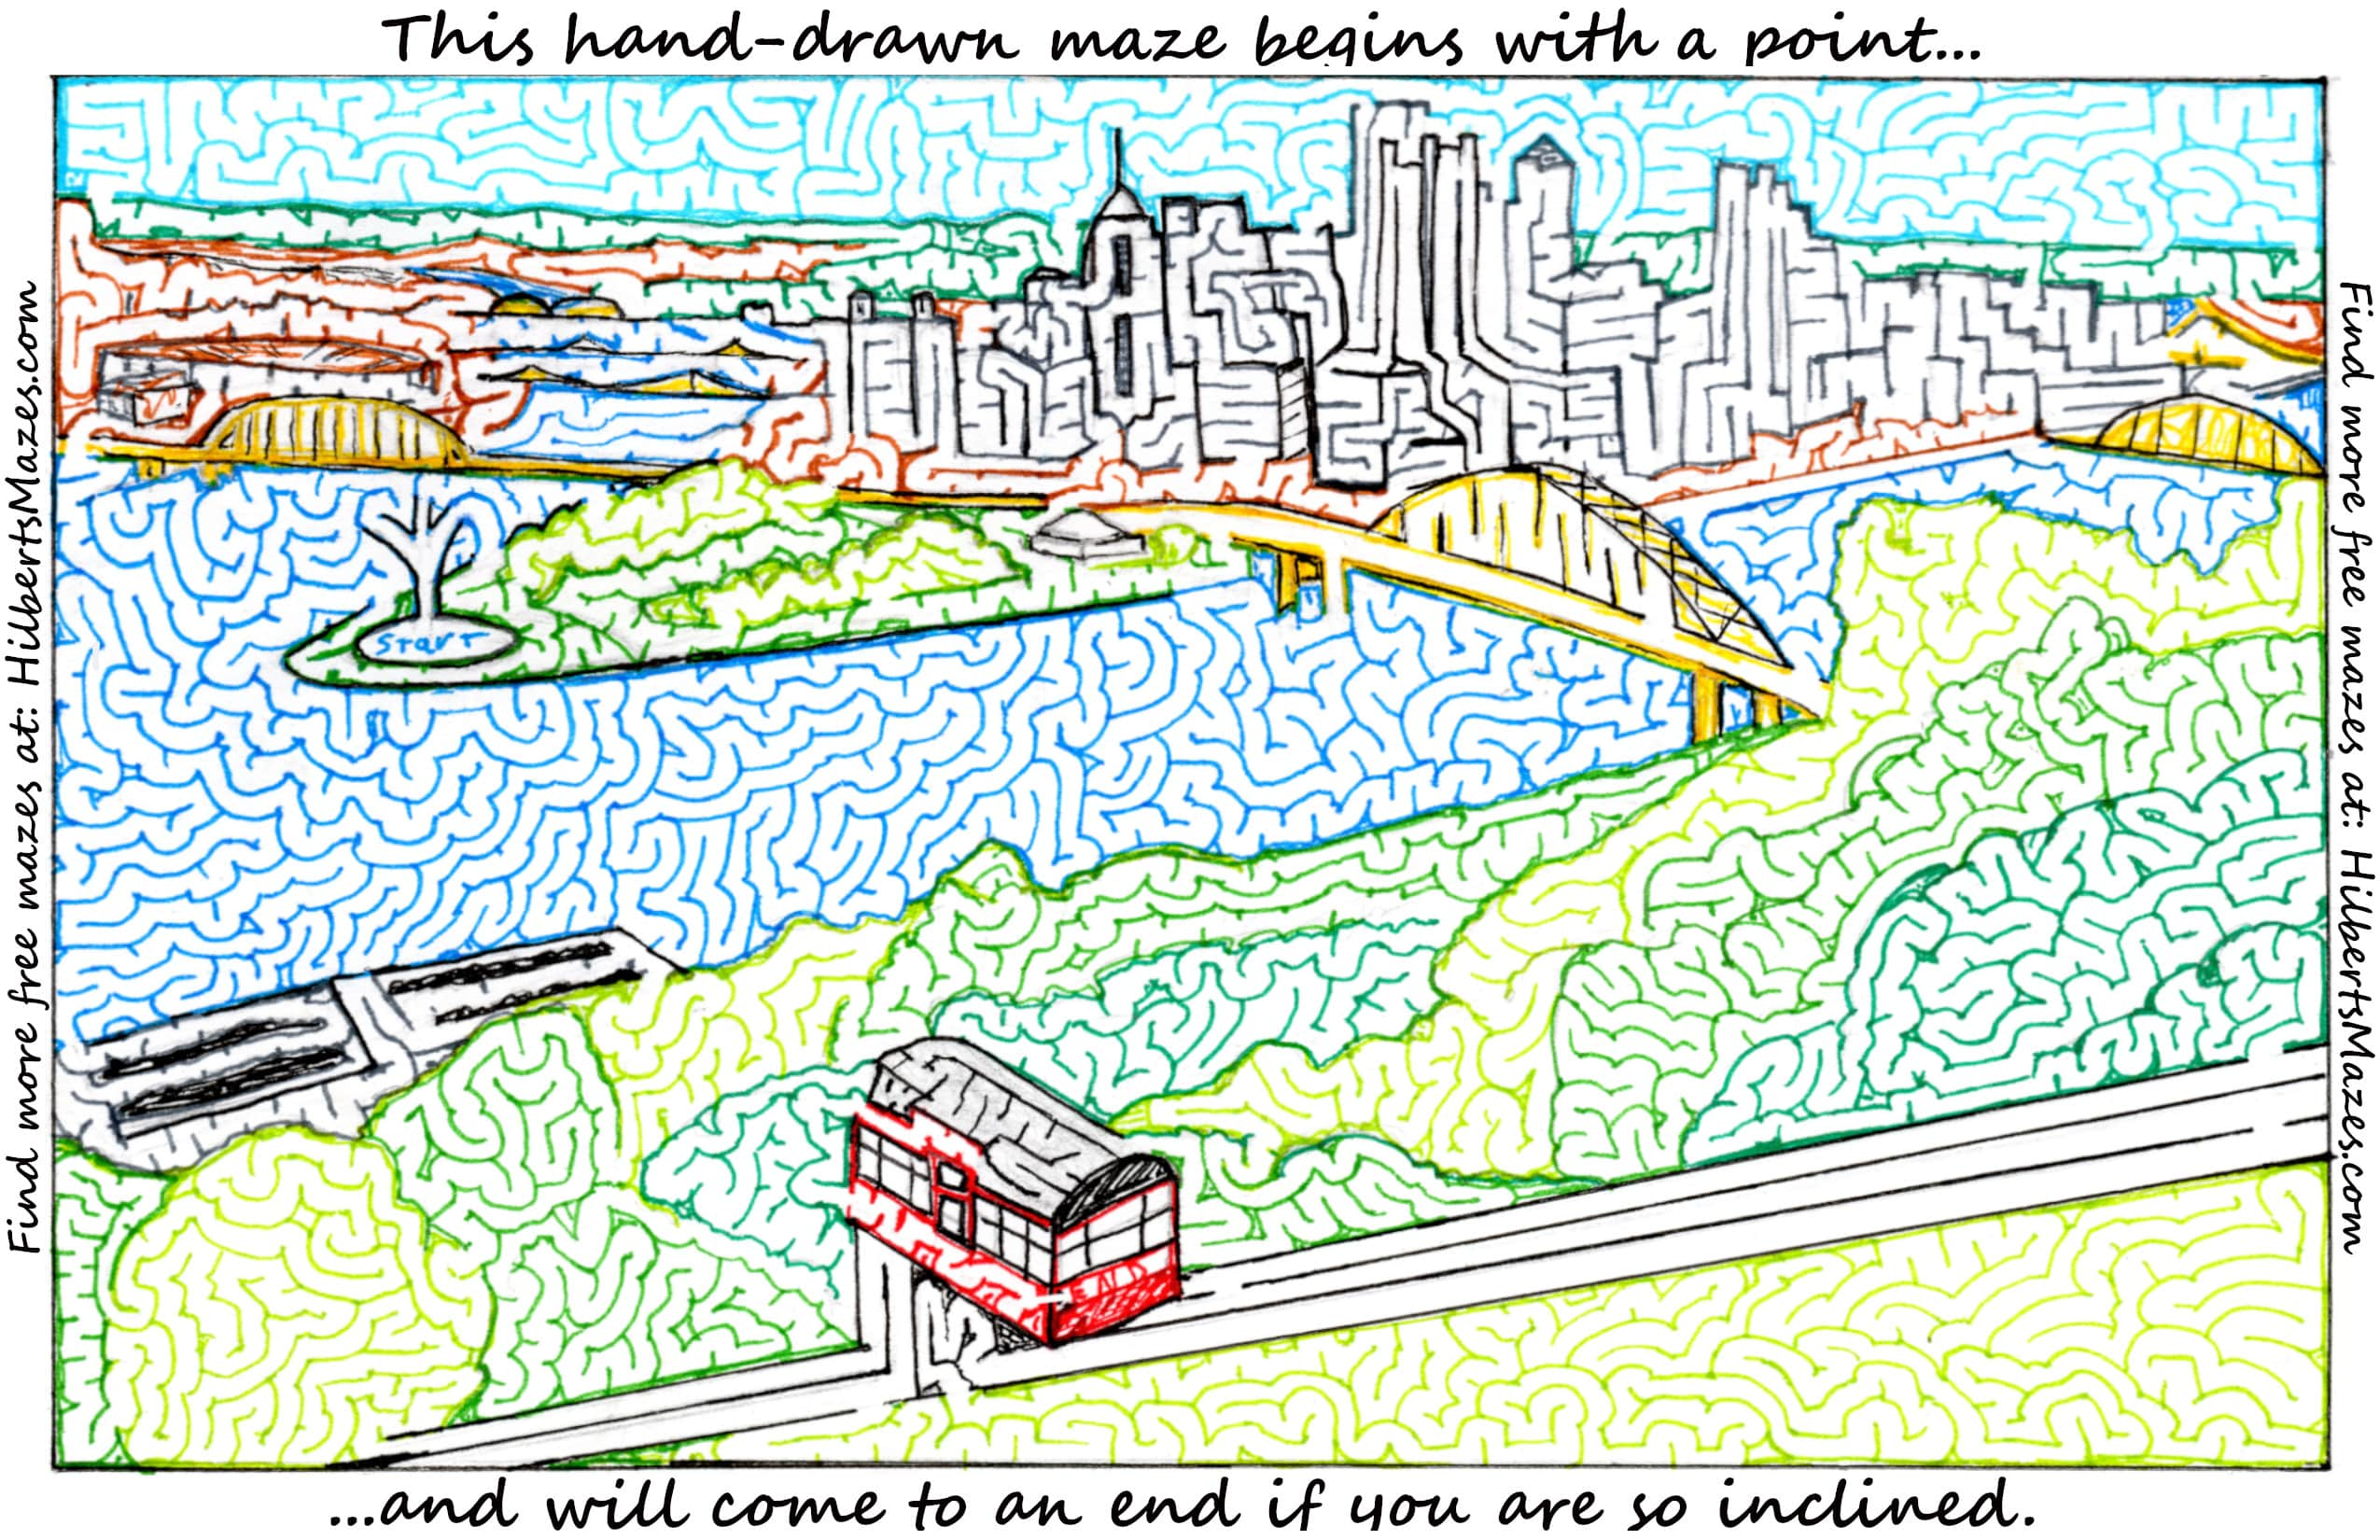 Free Printable Hand Drawn Pittsburgh Maze. Easily downloadable and printable PDF format. Great Mazes for both kids & adults very challenging but fun.